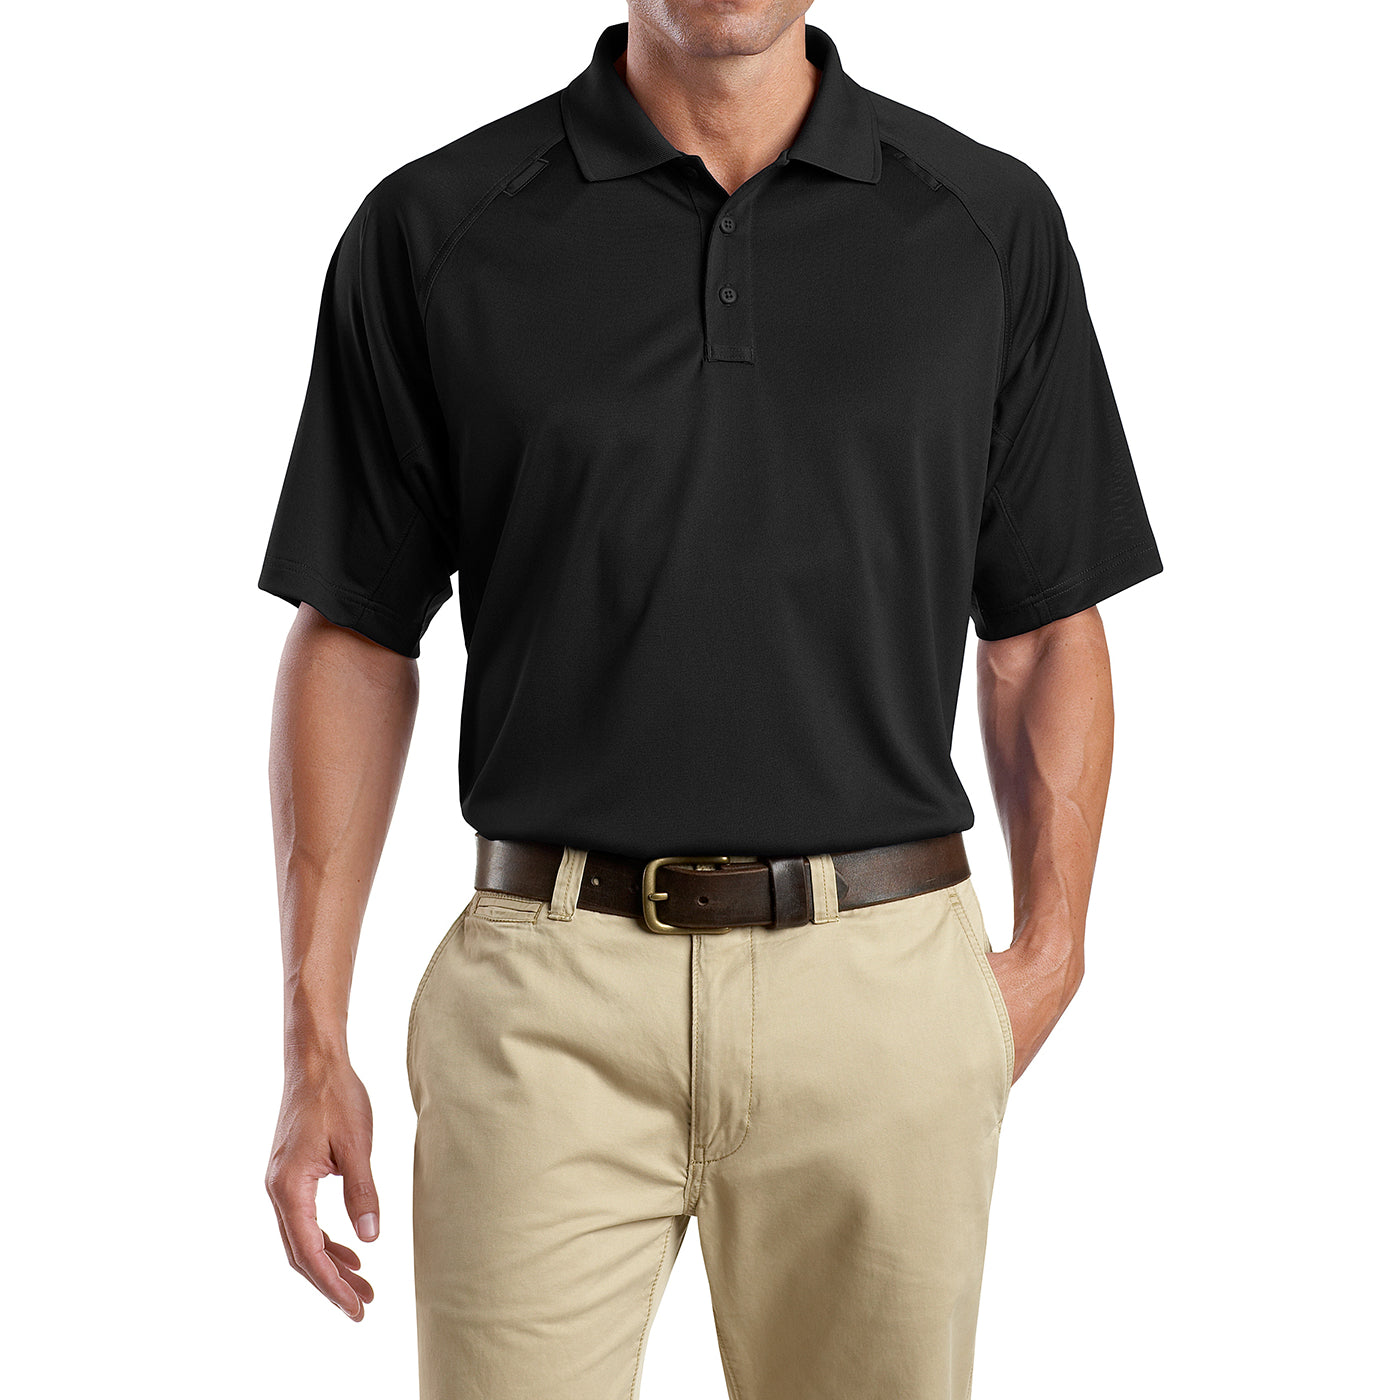 Men's Snag-Proof Tactical Polo Shirt - Black - Front